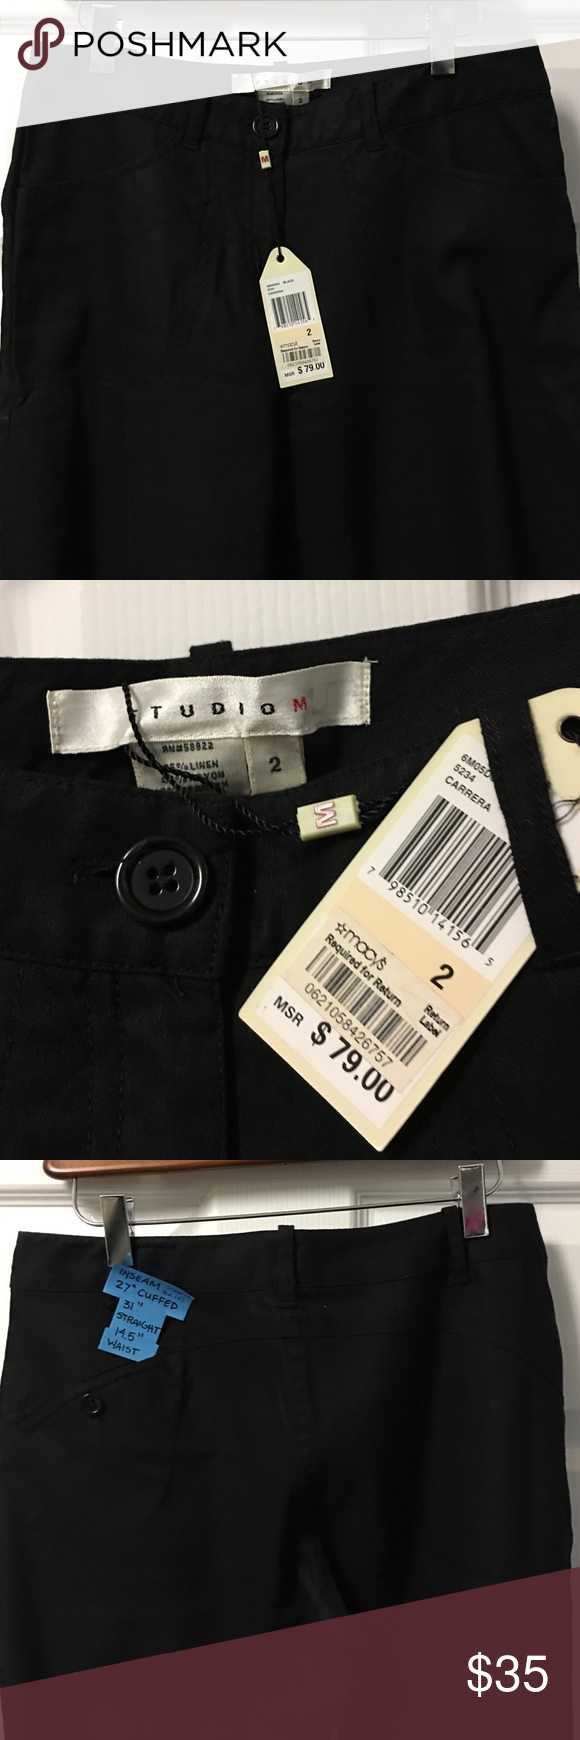 """Studio M Black Linen Pants. NWT Inseam 27"""" cuffed, 31"""" uncuffed  Waist is 14 1/2"""" across flat. Linen has some weight to it. This will be a nice fall trouser. NWT. Paid $79 at Macy's Max Studio Pants Trousers"""